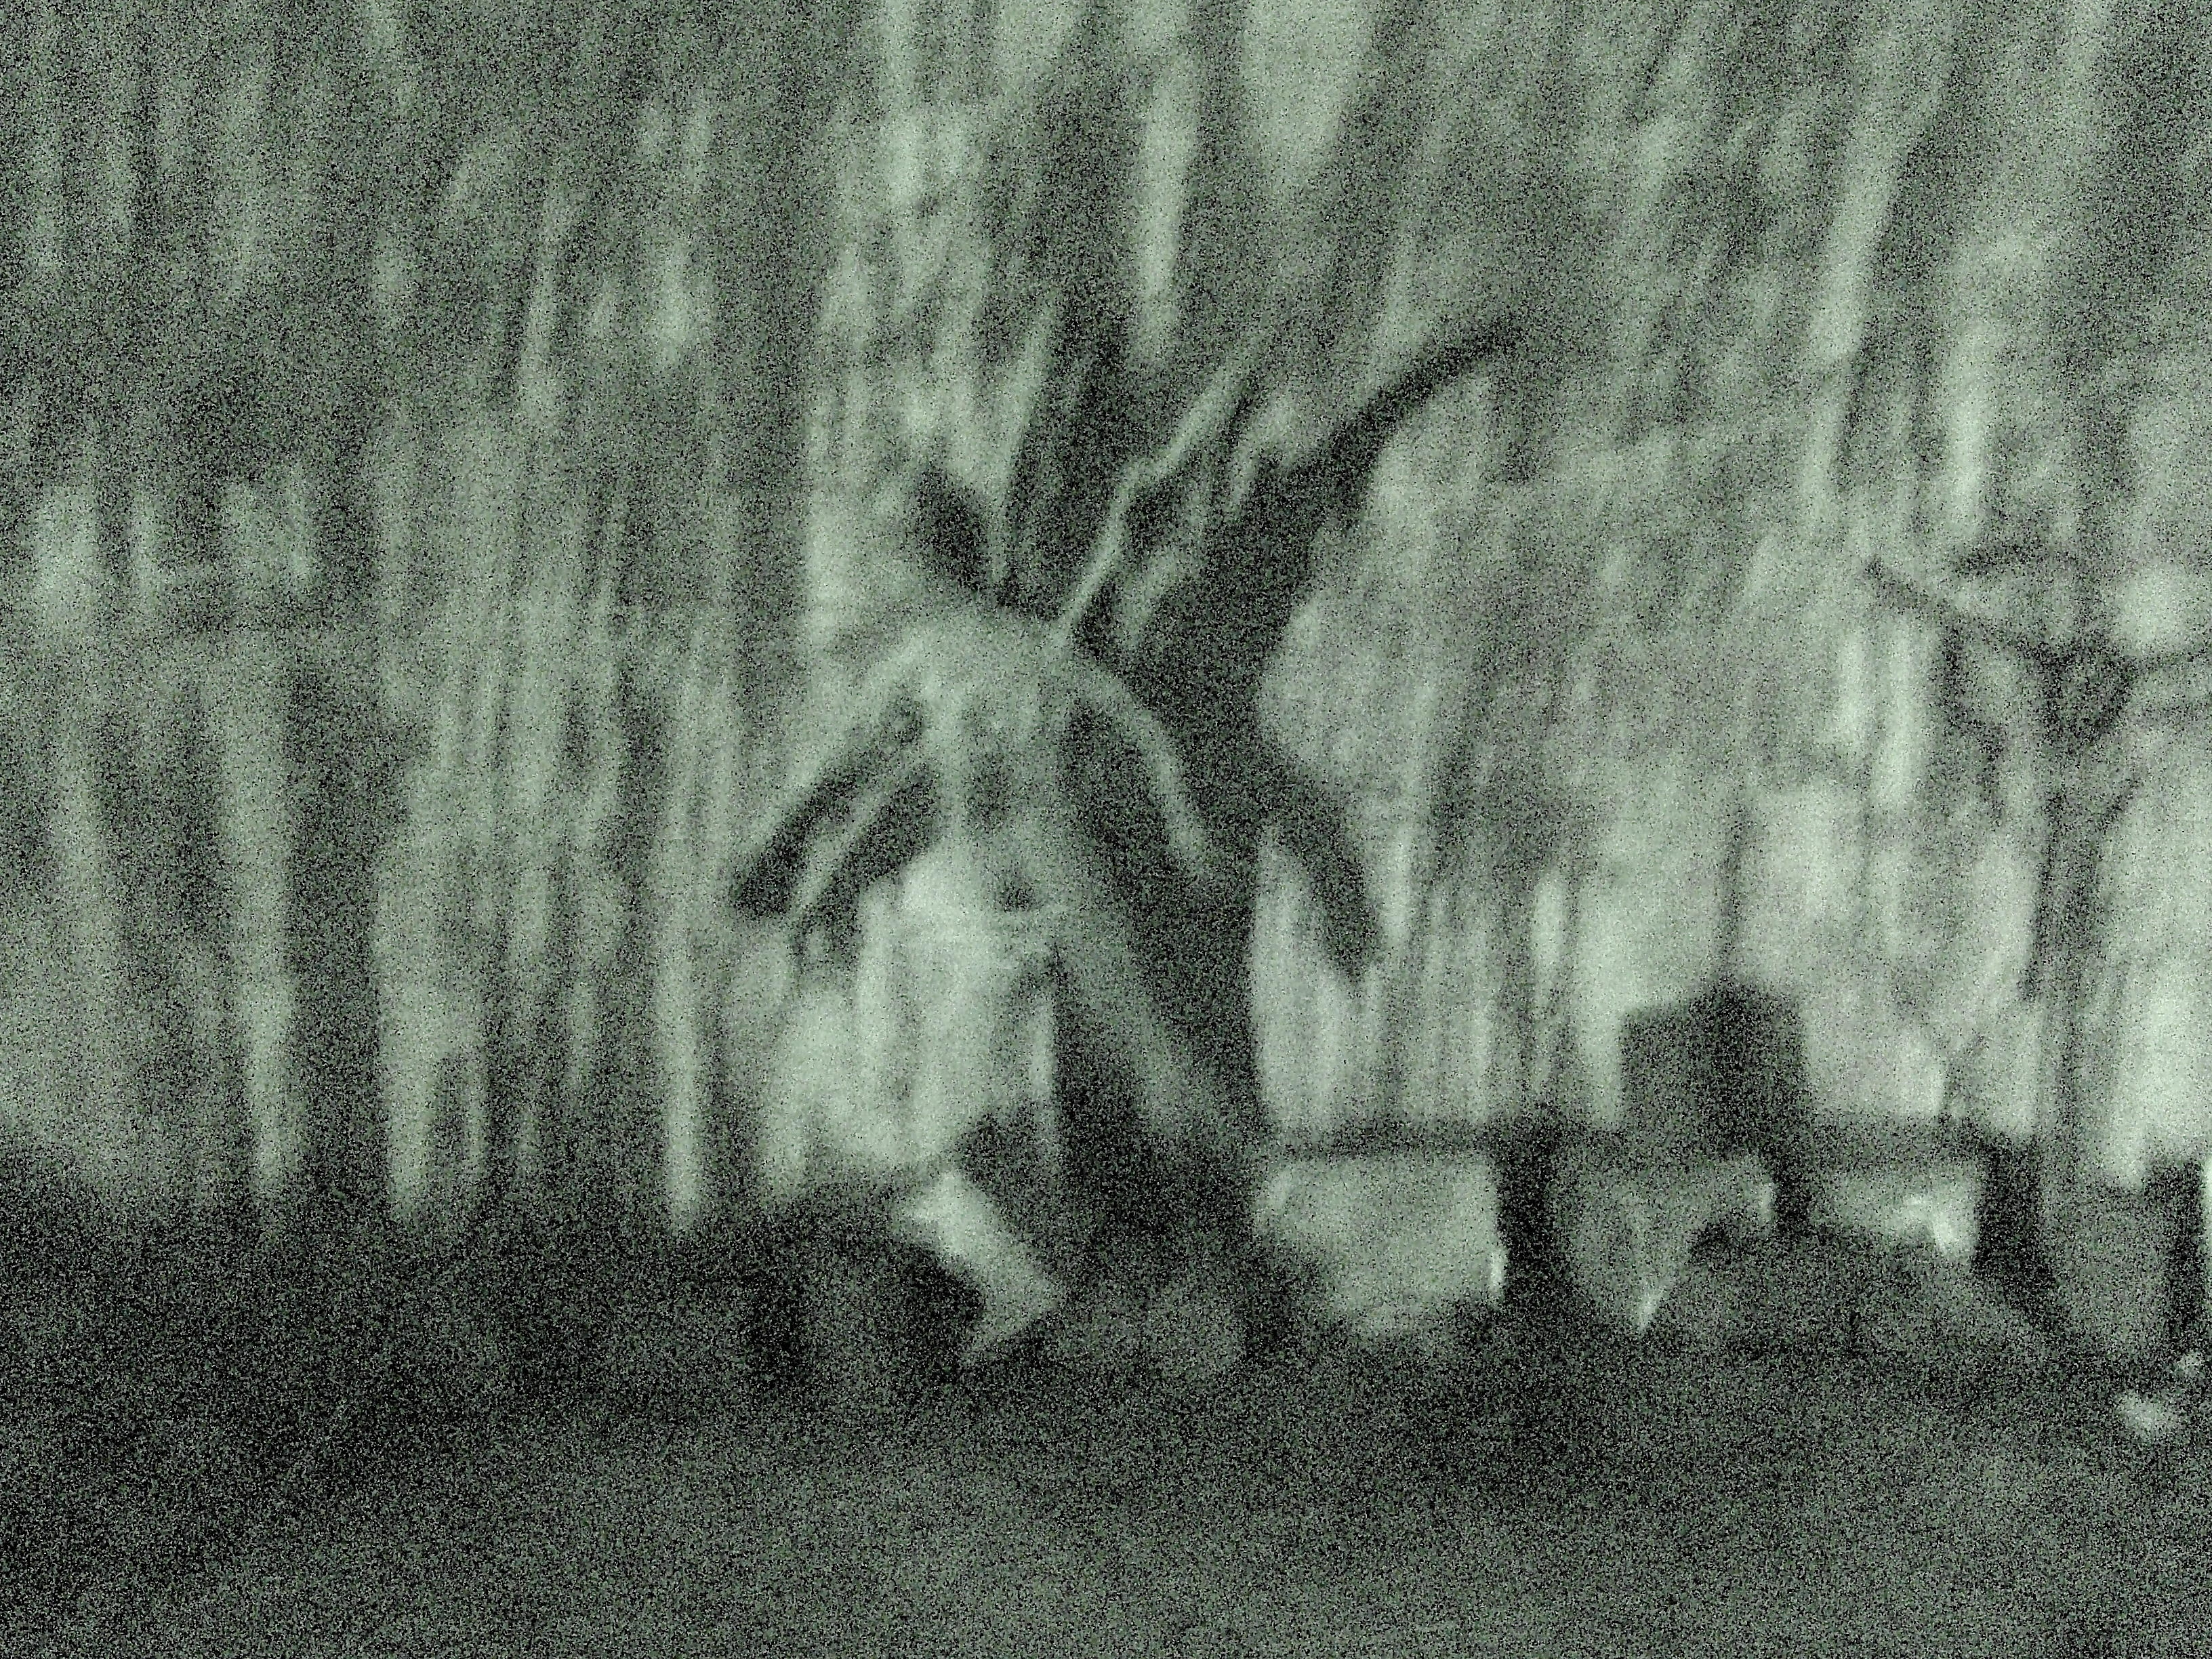 is mothman real or fake